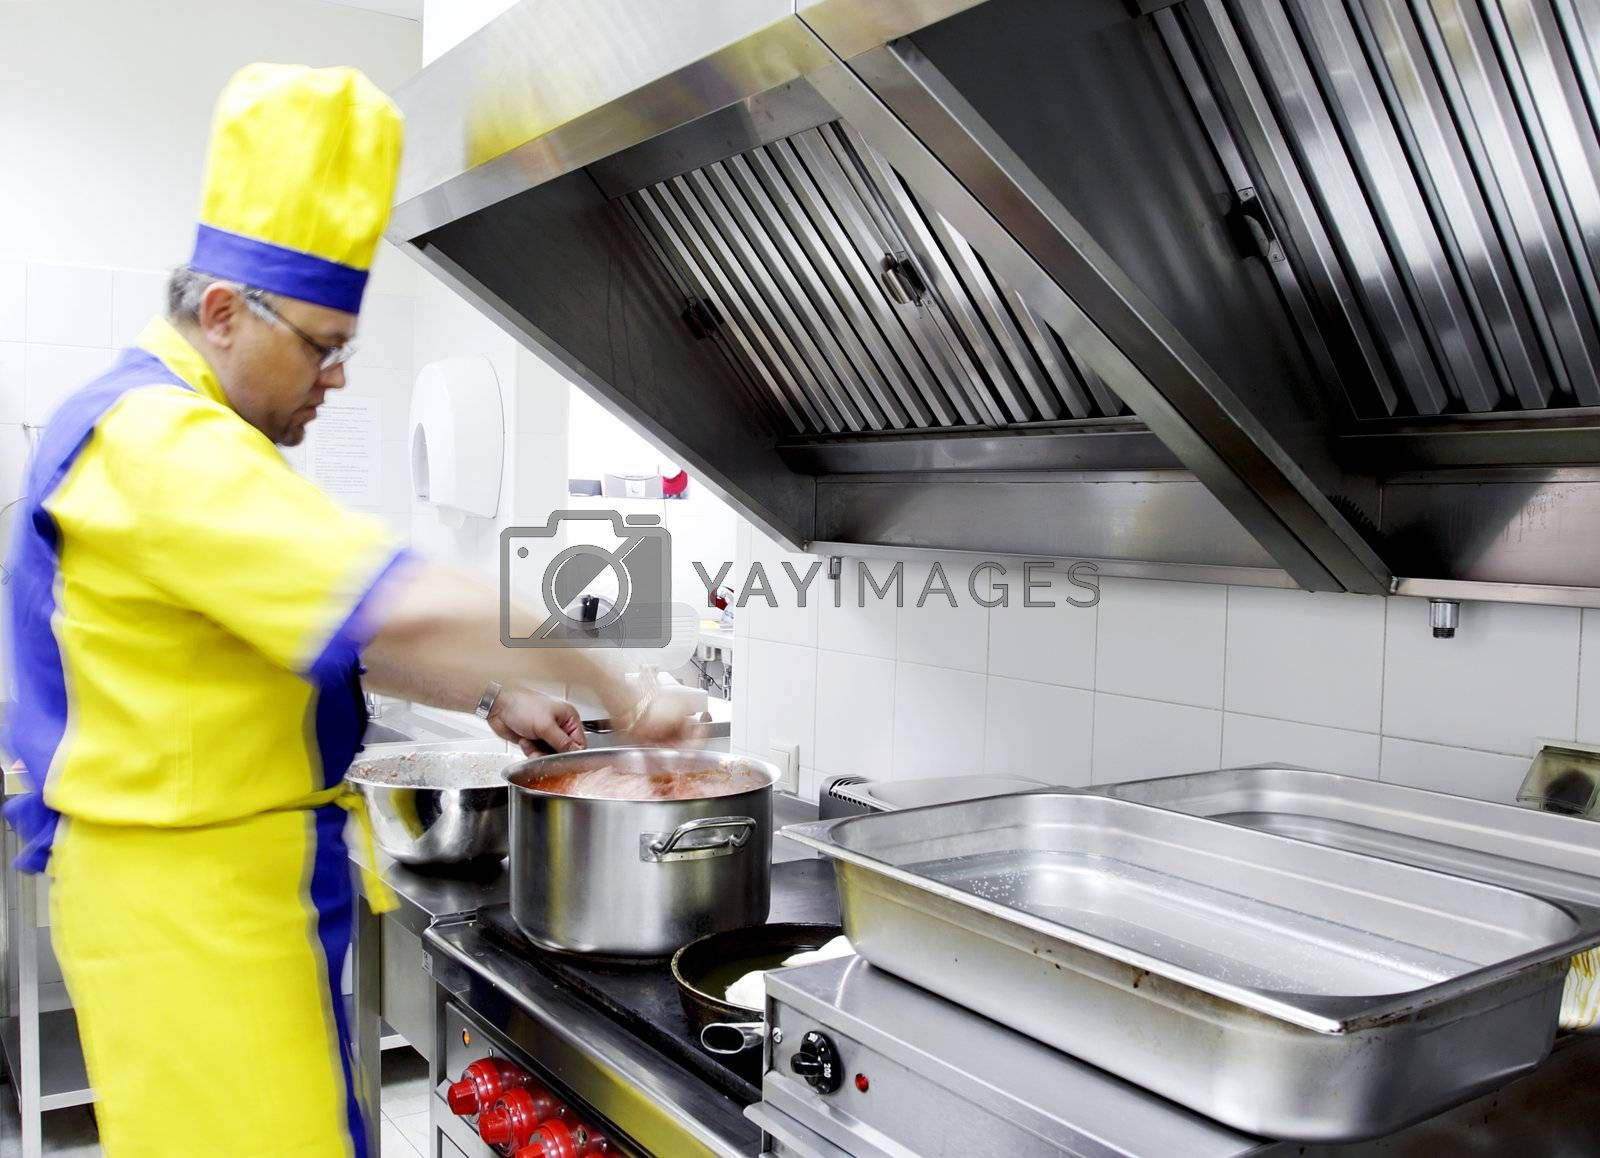 a cook preparing a dish on the stove